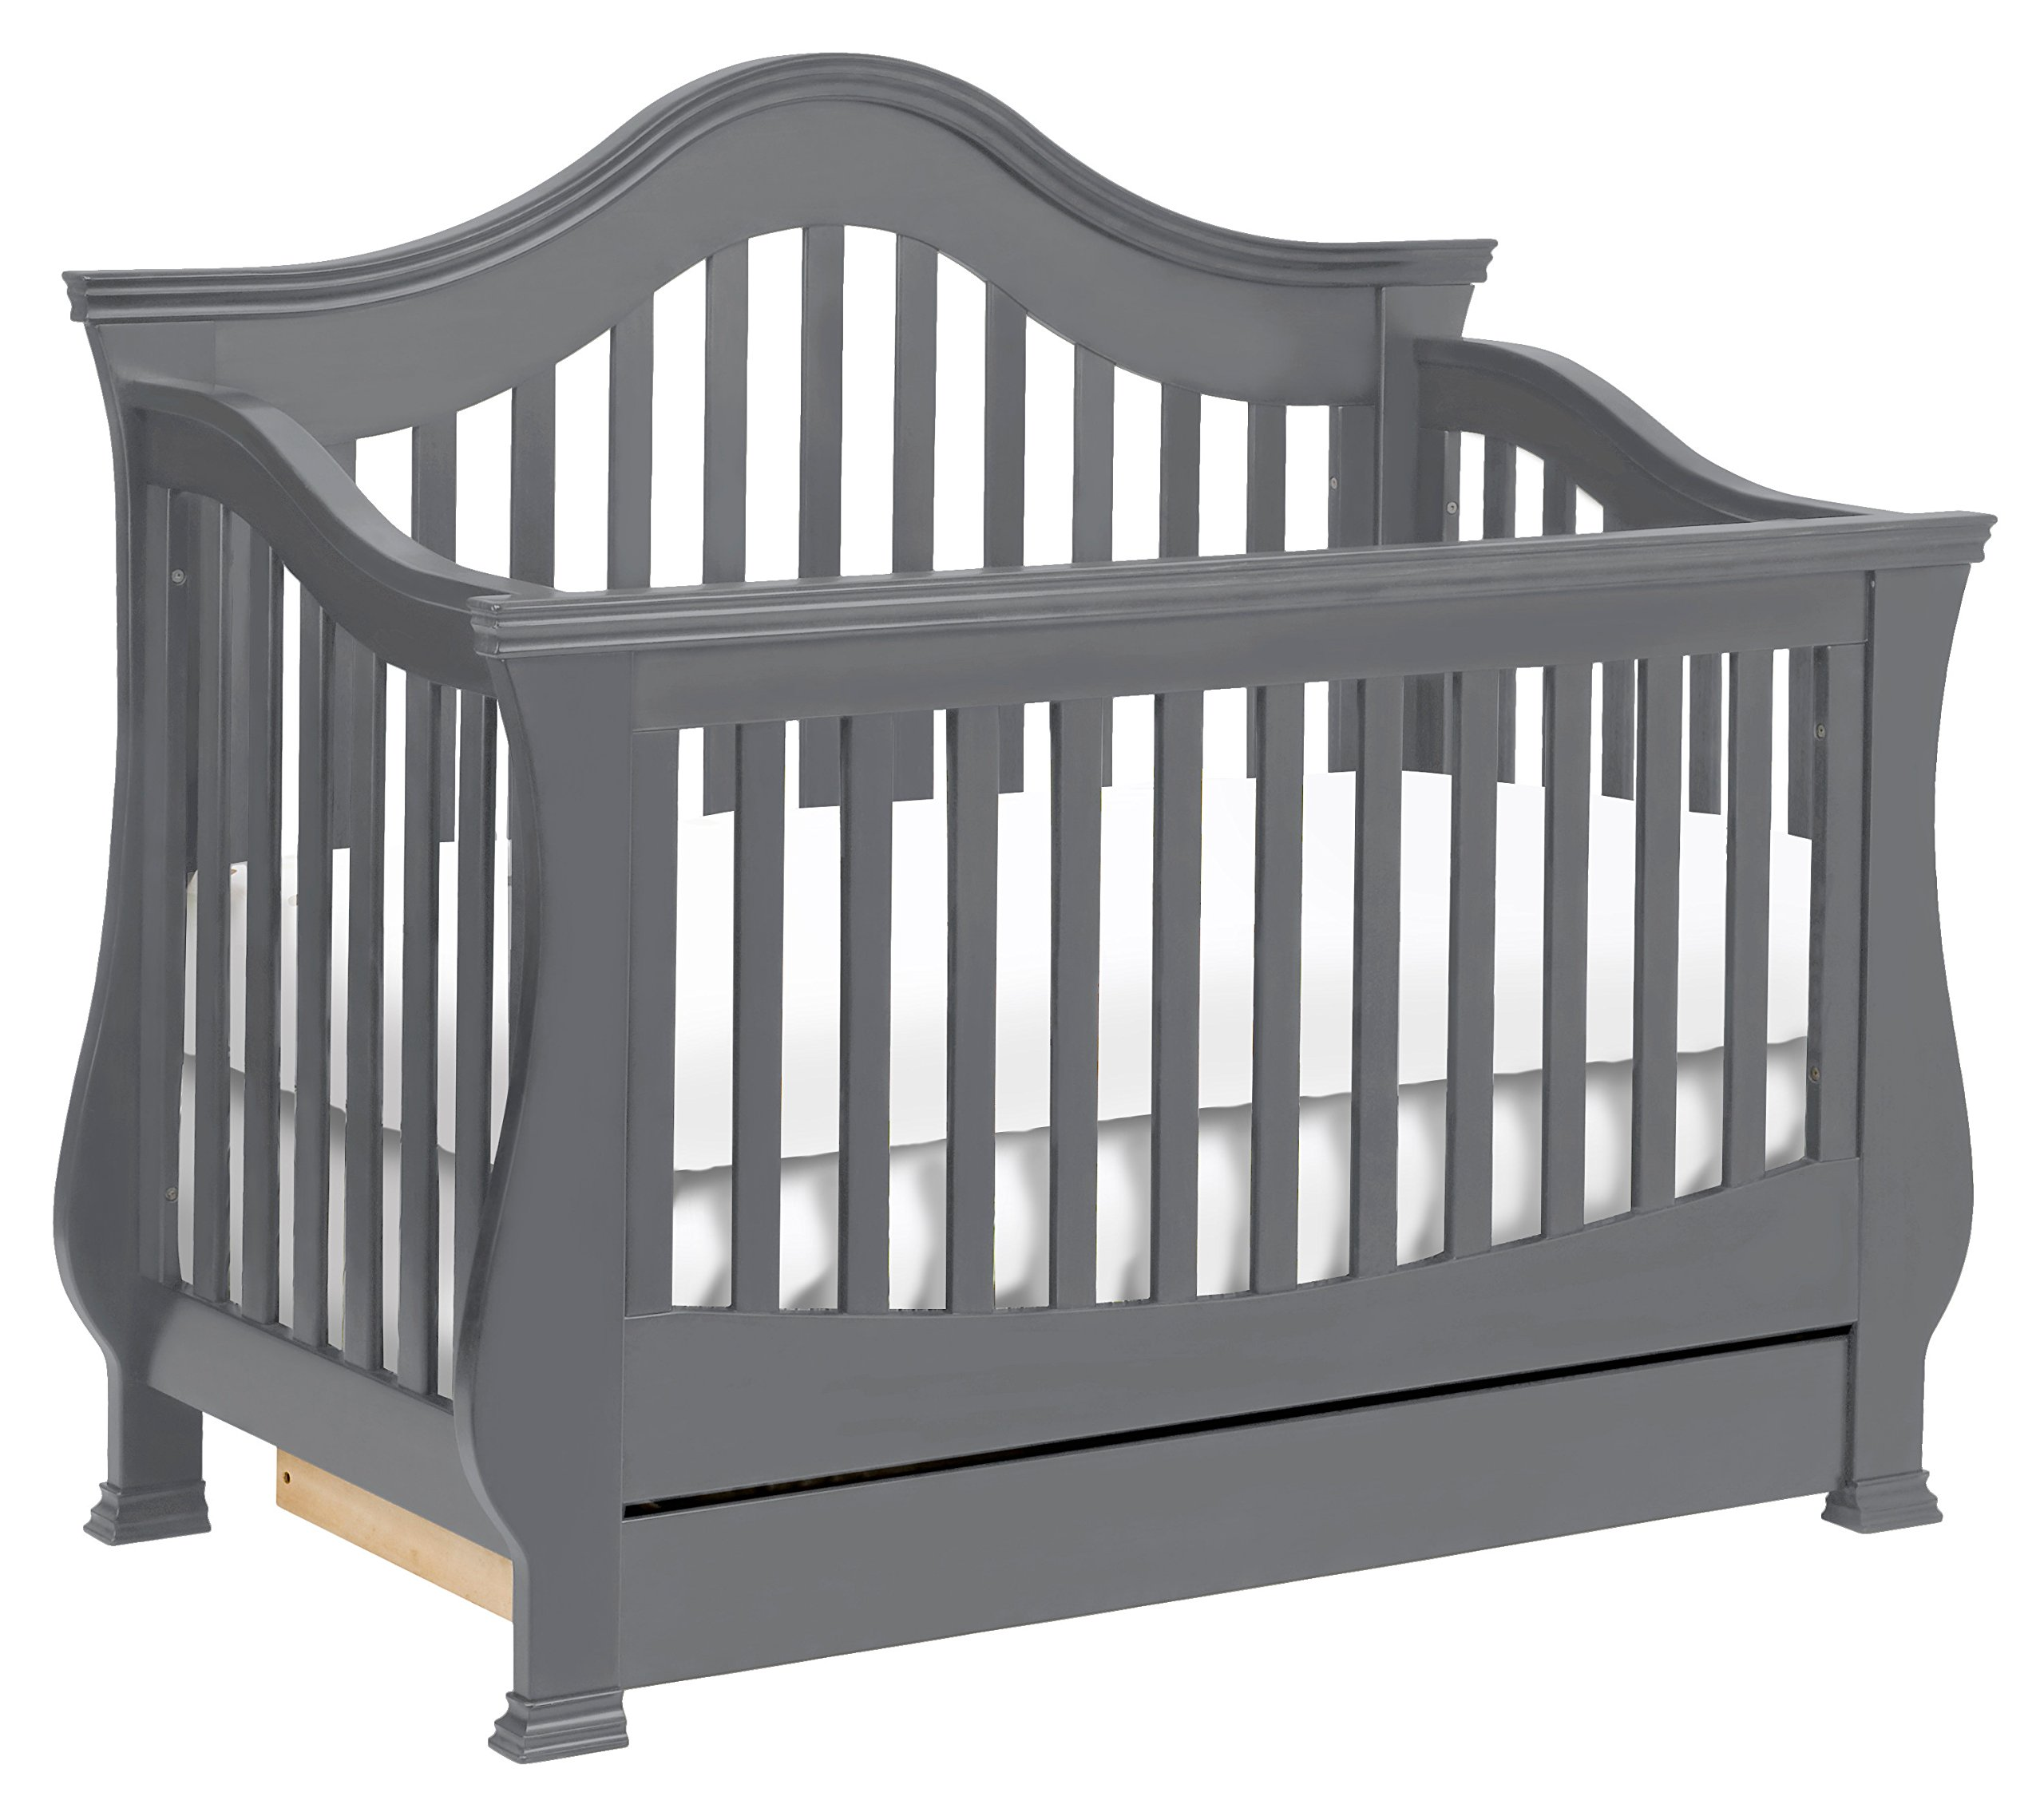 Million Dollar Baby Classic Ashbury 4-in-1 Convertible Crib with Toddler Bed Conversion Kit, Manor Grey